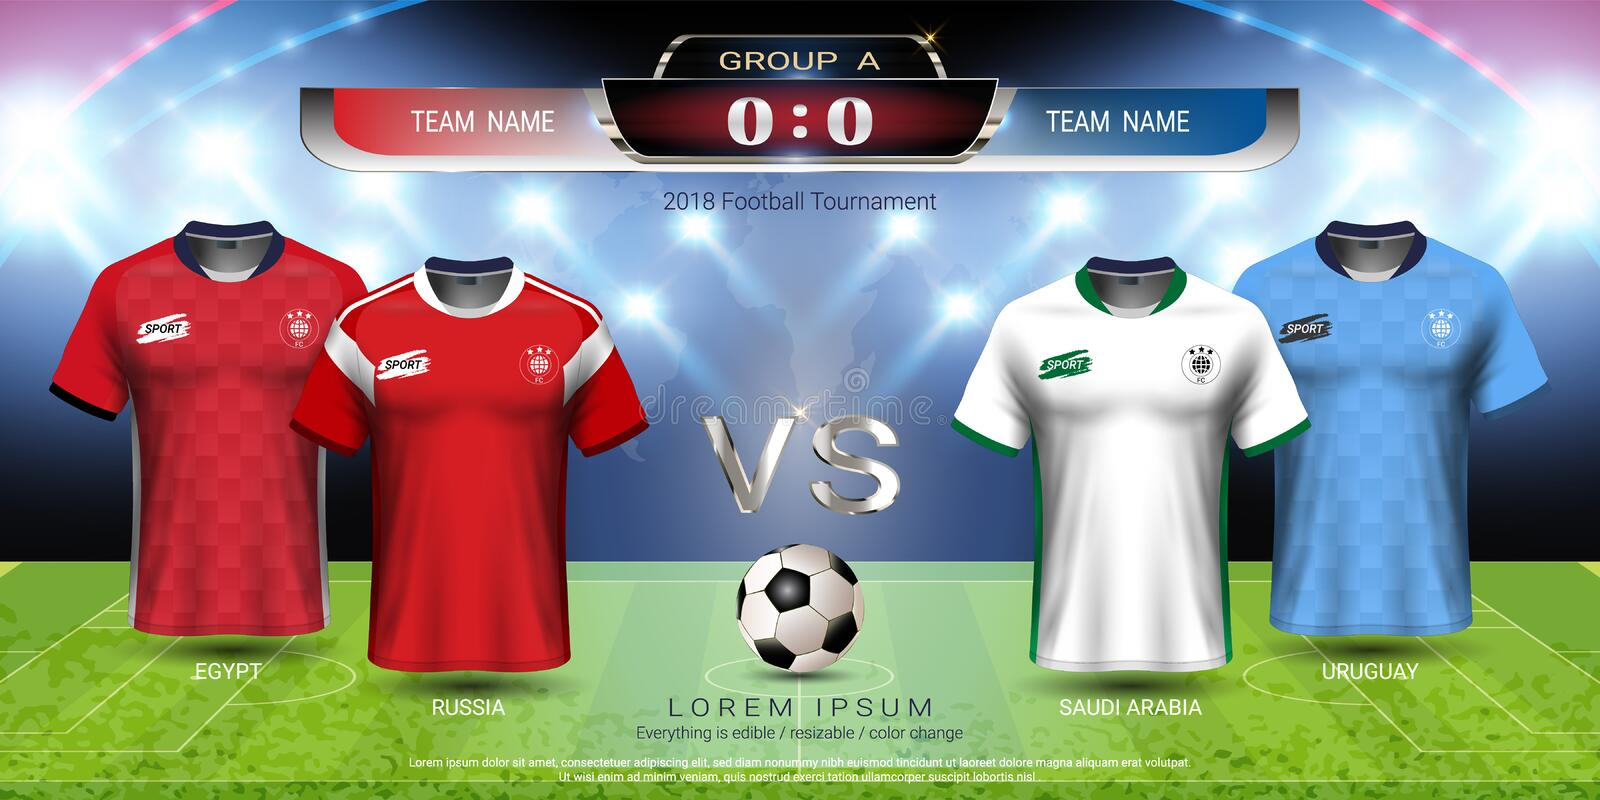 Football cup 2018 team group A, Soccer jersey with scoreboard mock-up royalty free illustration